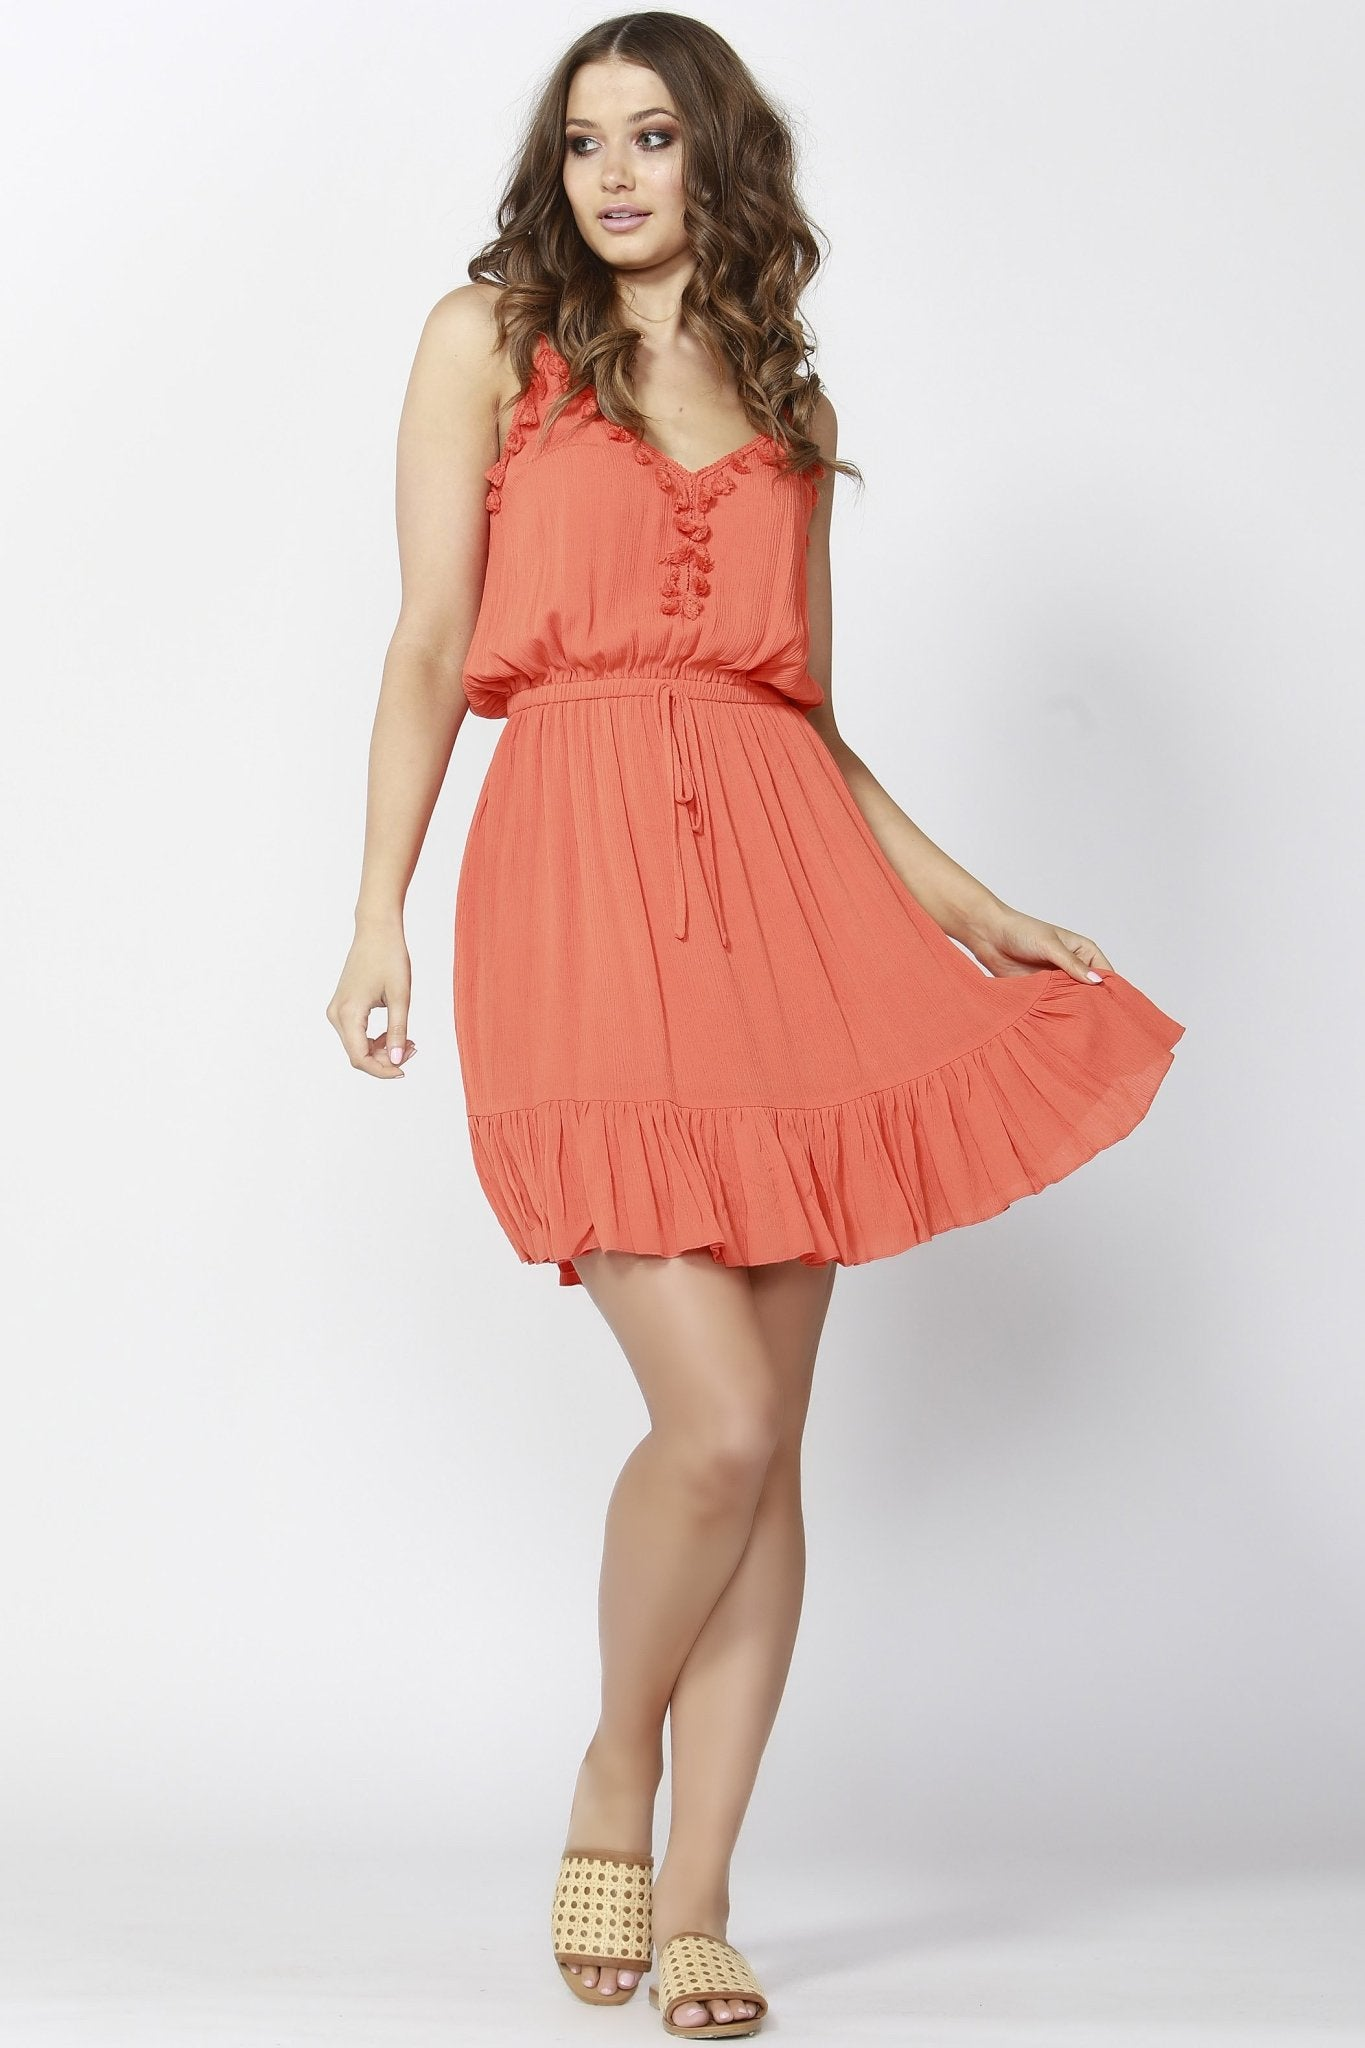 Sass Tongue Tied Tasseled Dress in Persimmon - Hey Sara